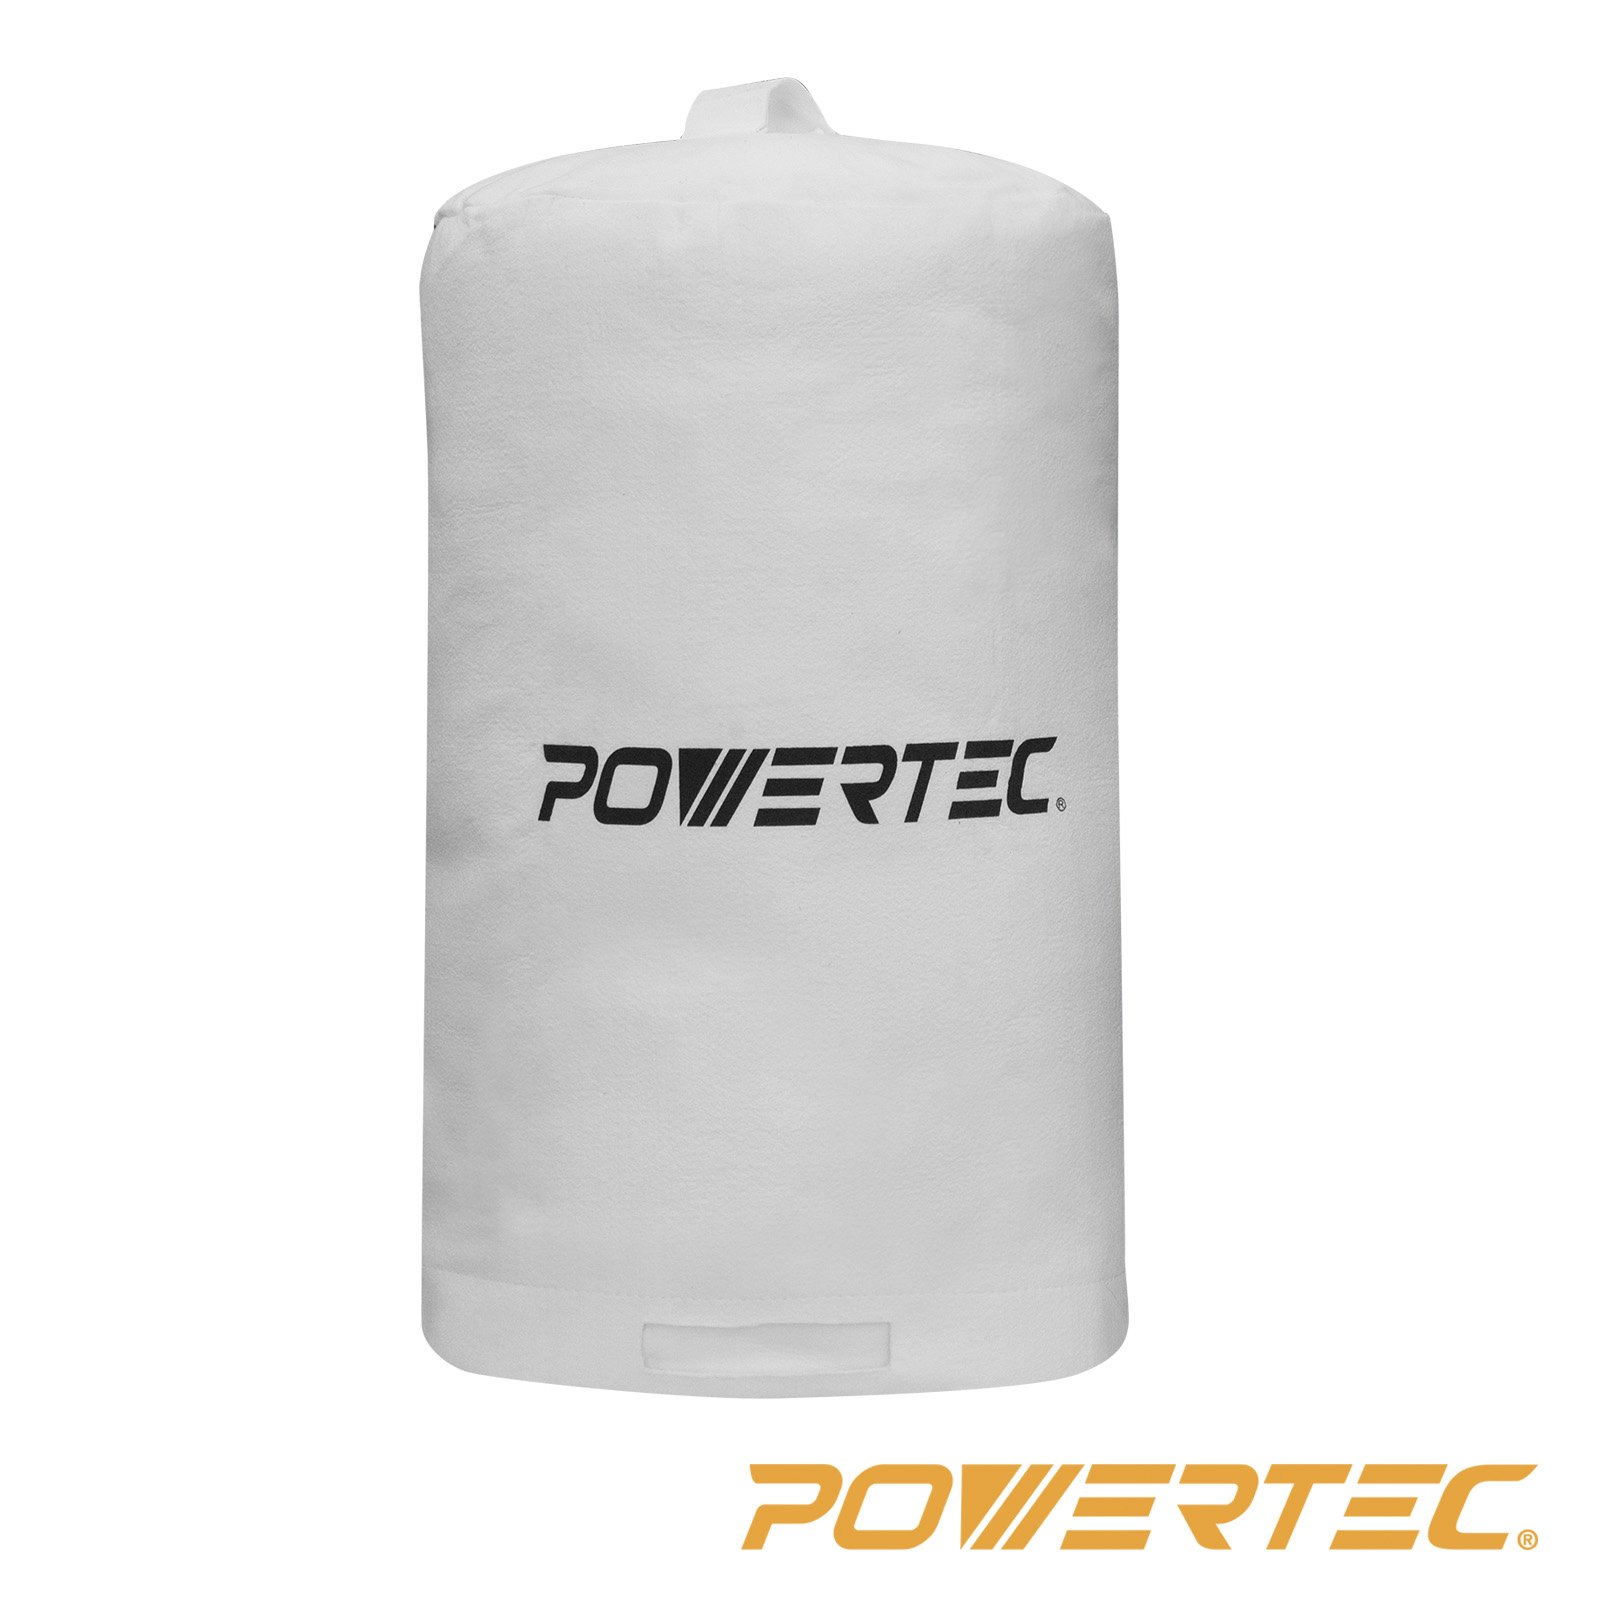 POWERTEC 70006 Dust Filter Bag, 14-Inch by 24-Inch, 1-Micron